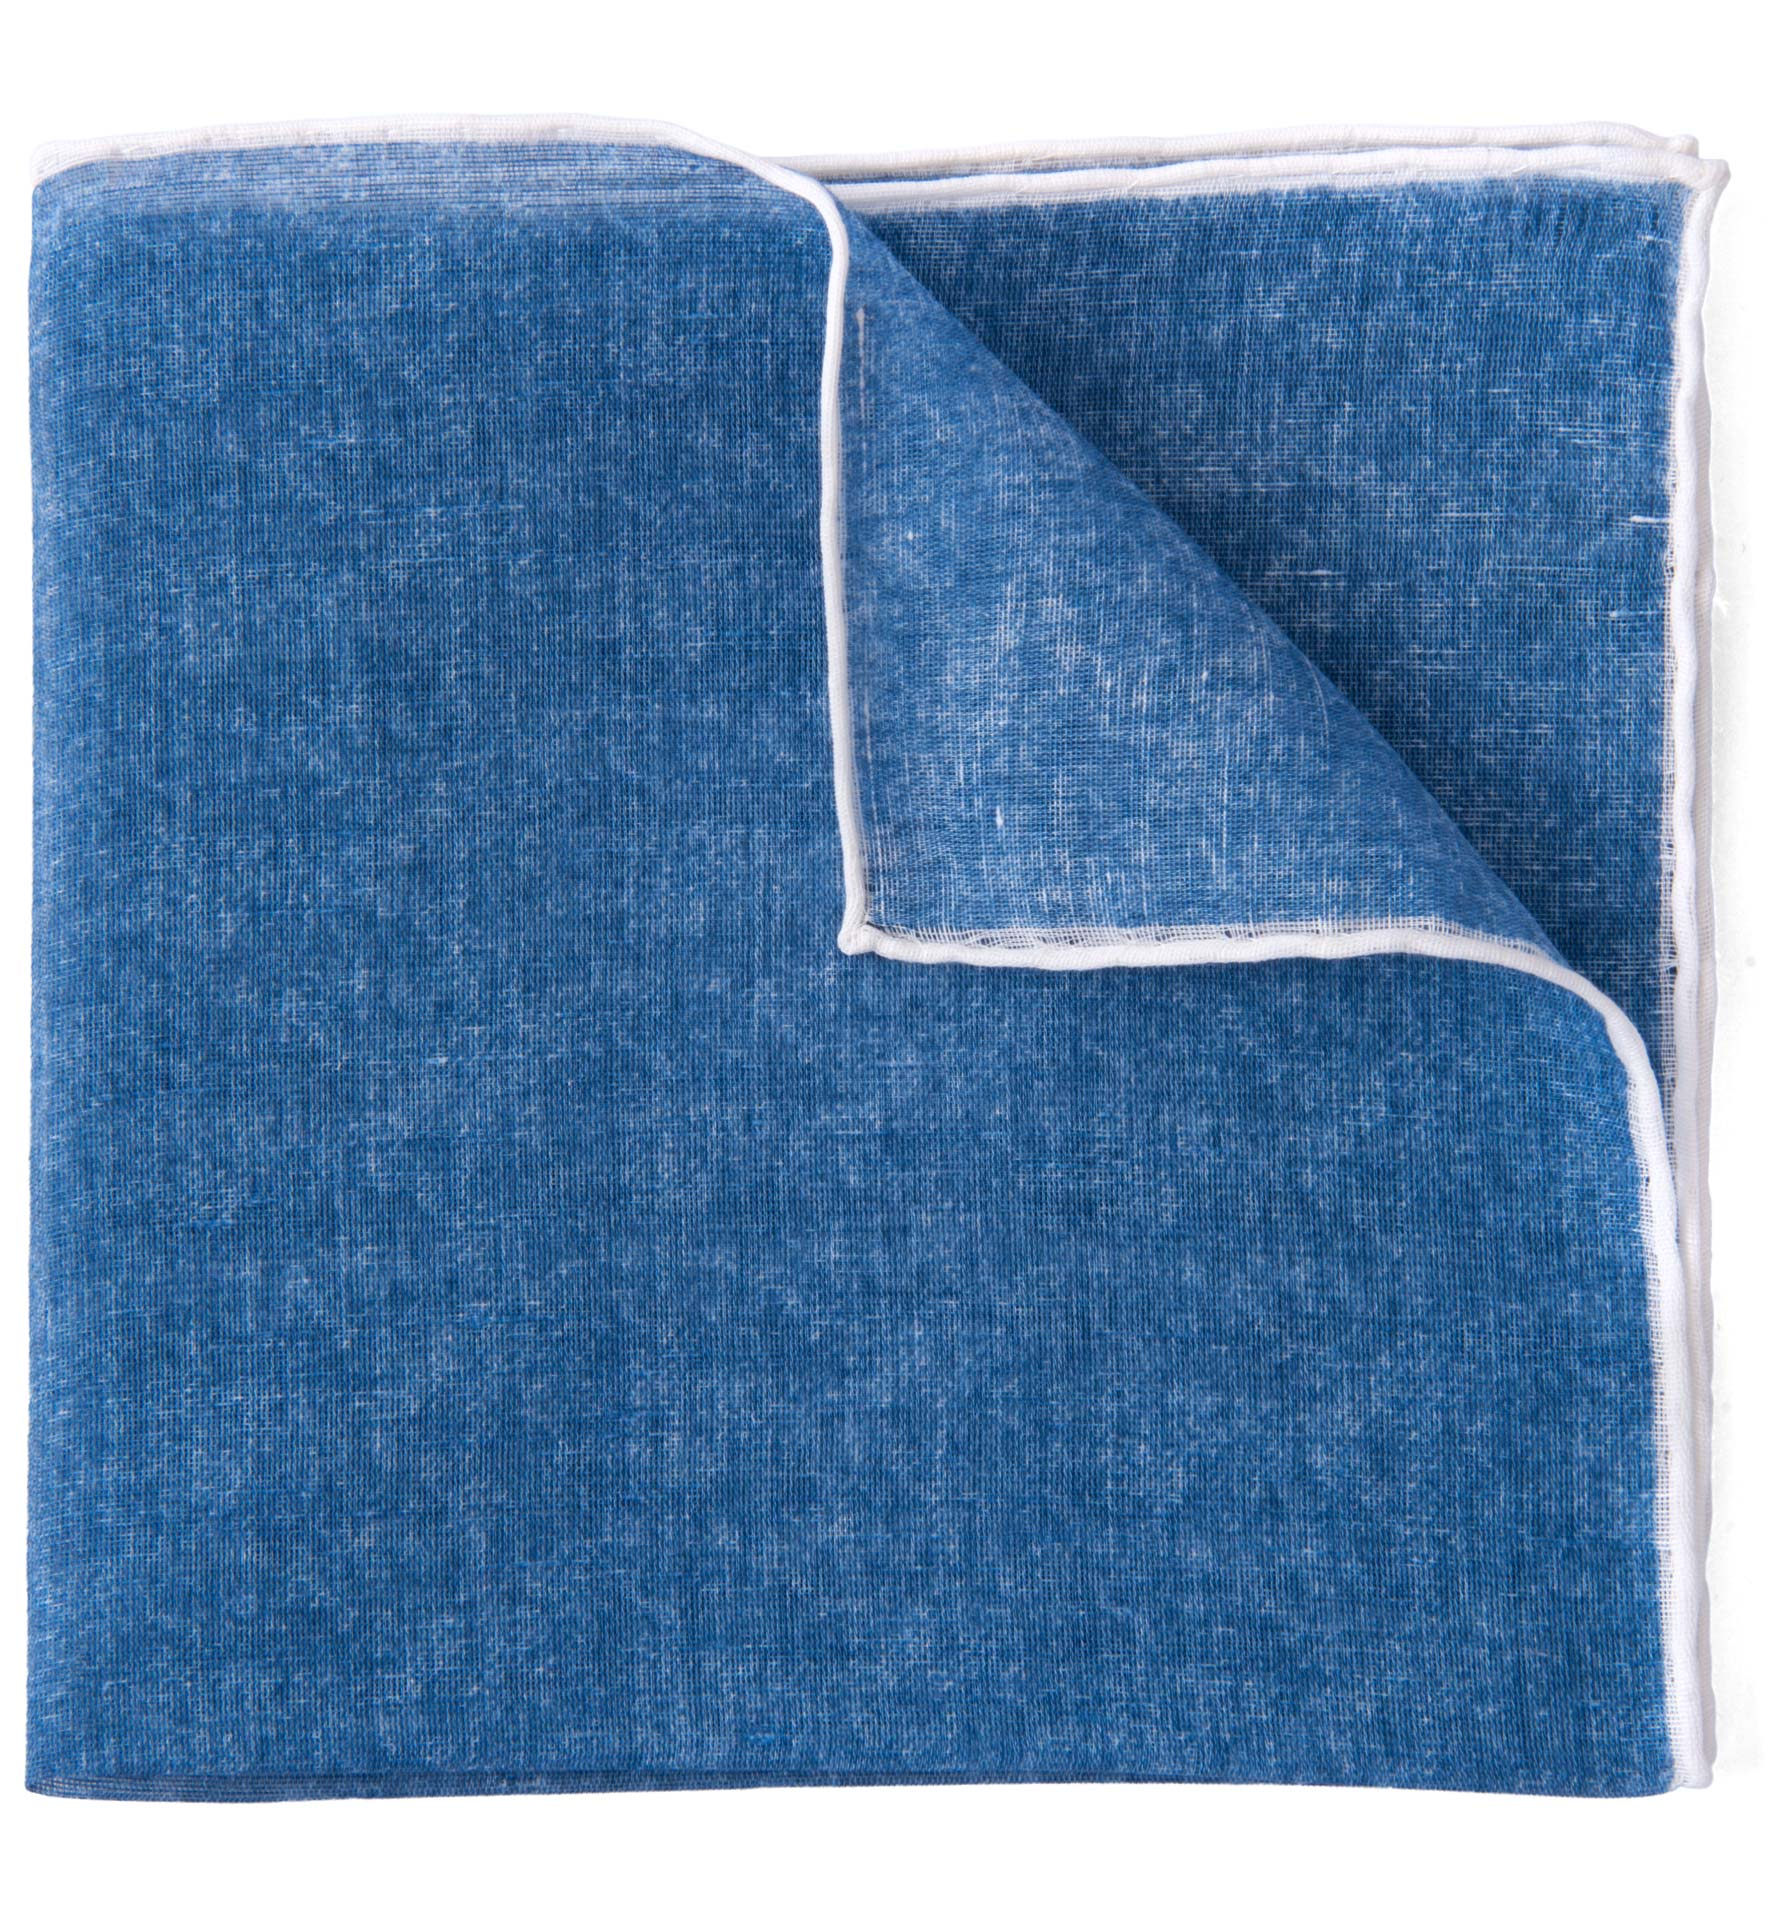 Zoom Image of Ocean Blue and White Cotton Linen Pocket Square